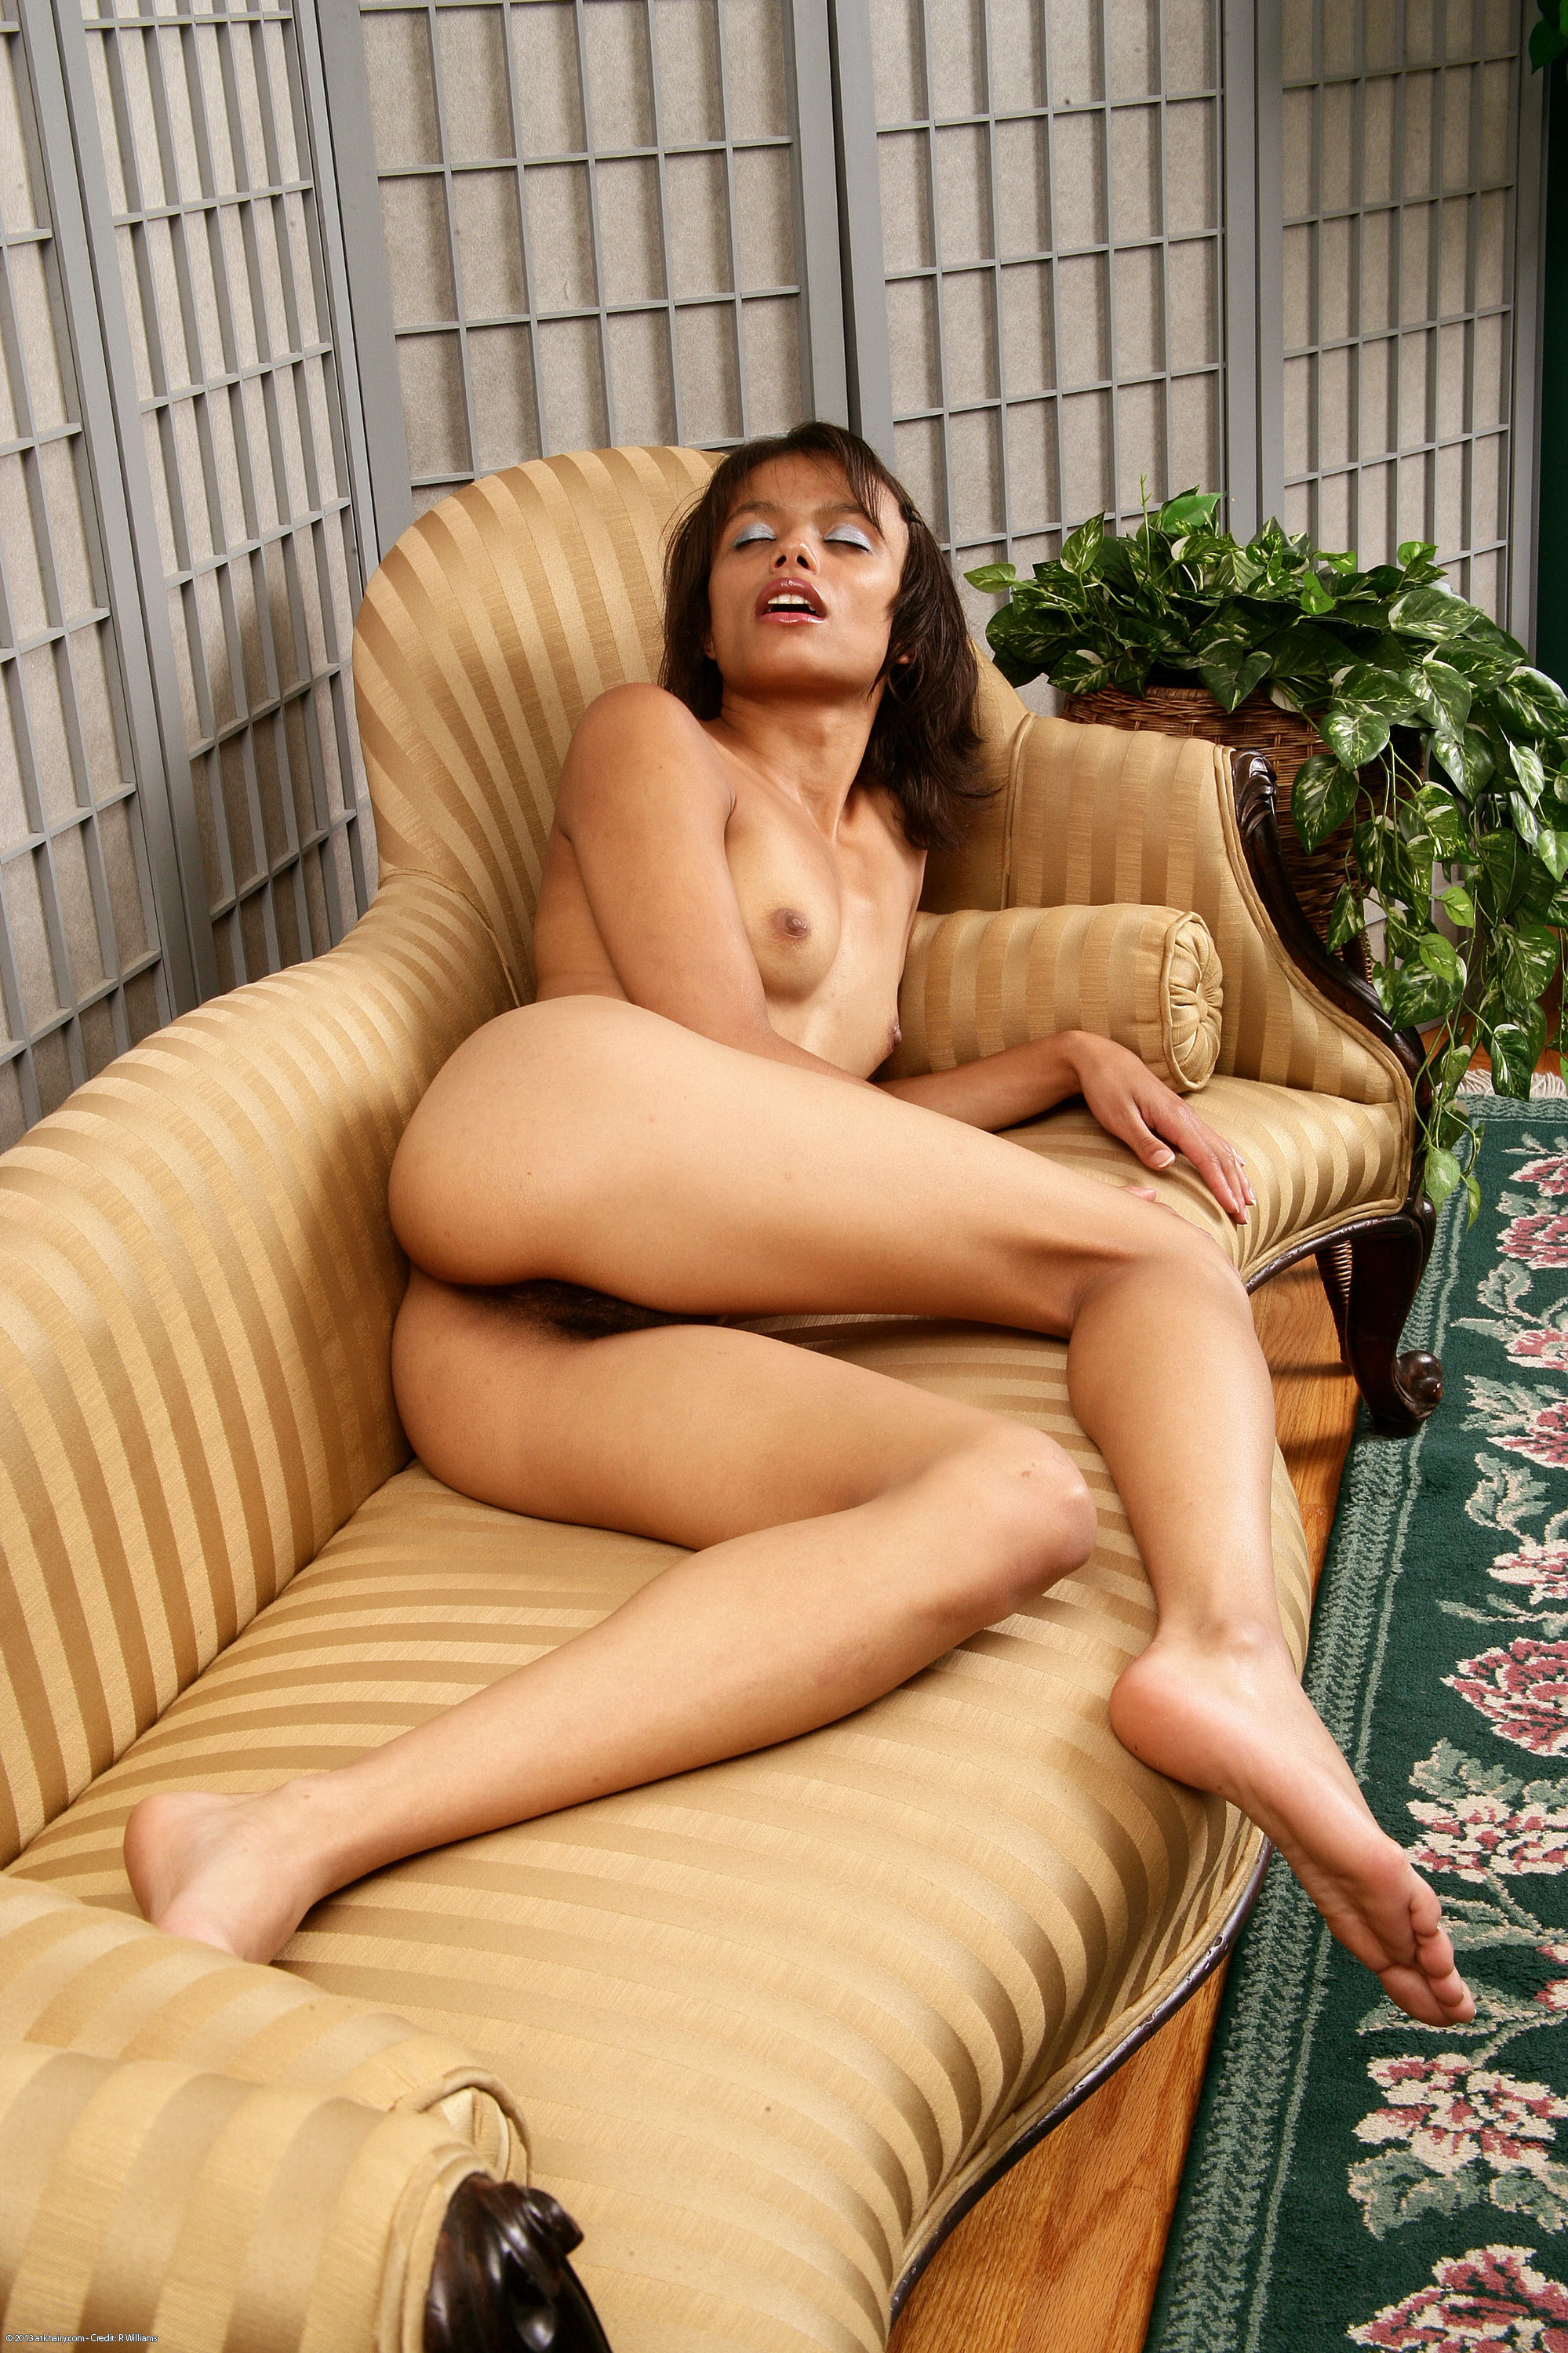 Nude black hairy girls, hot trans porn